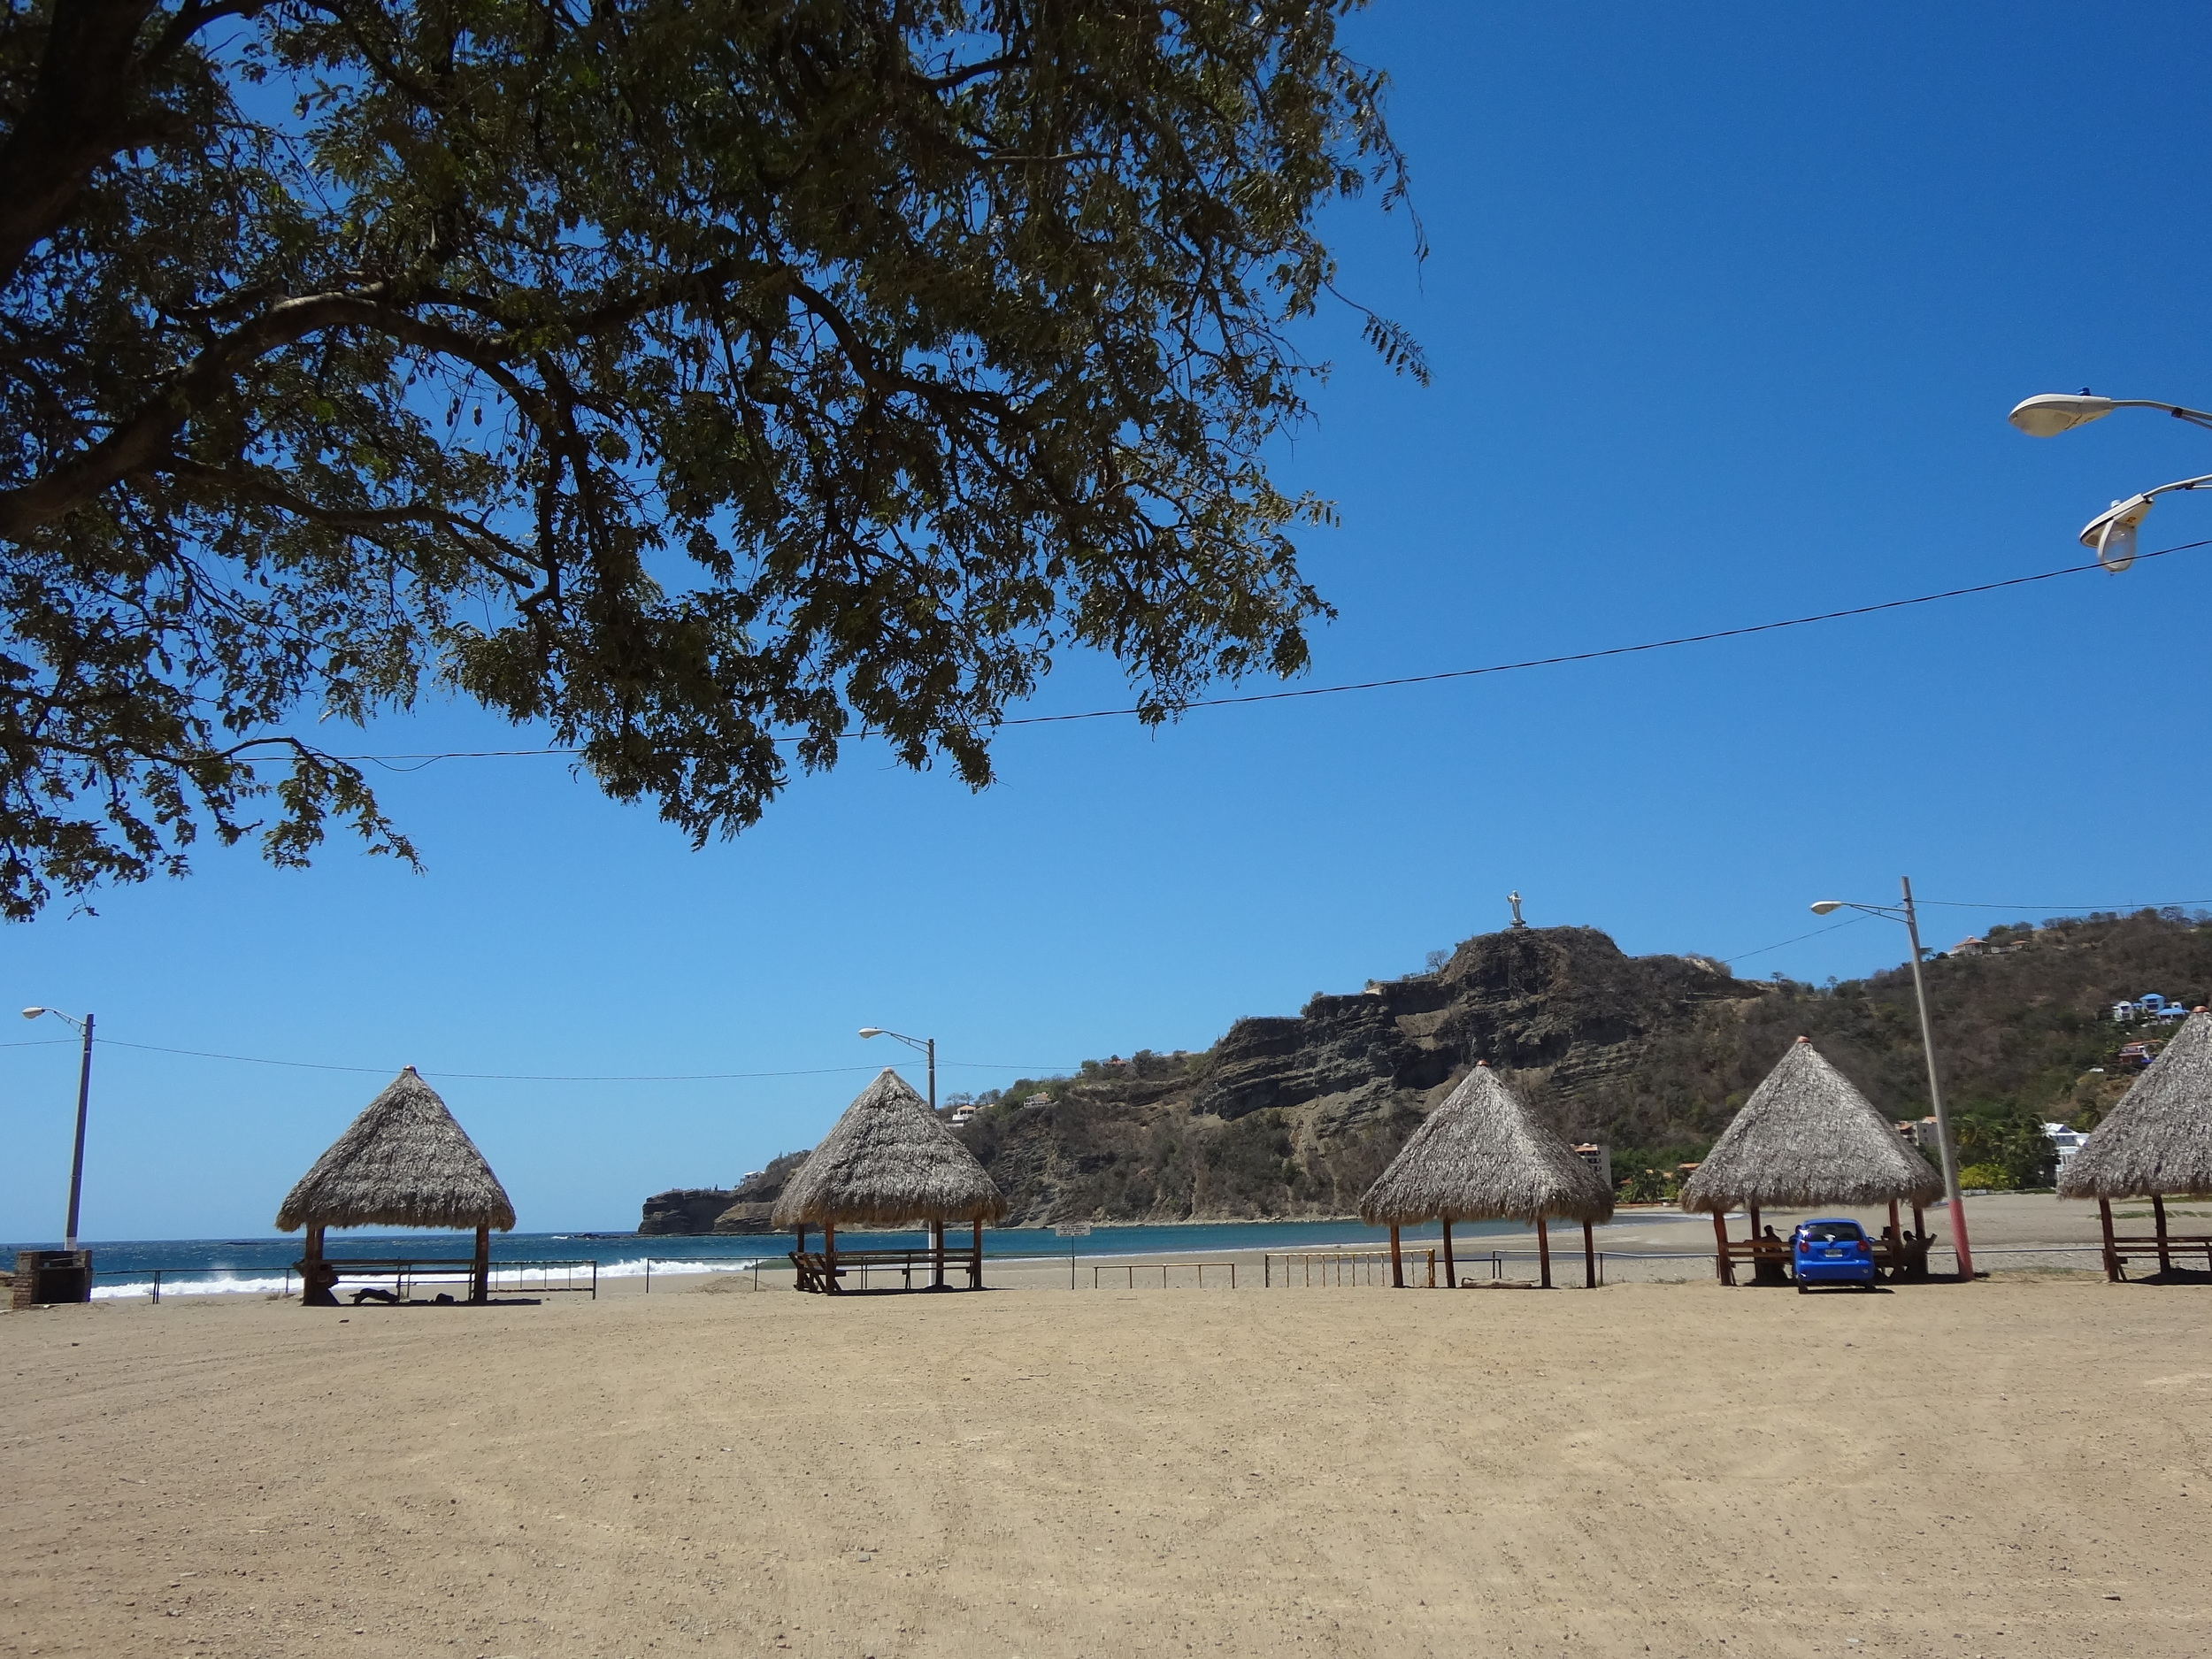 Thatch roofs are the look in Nicaragua.